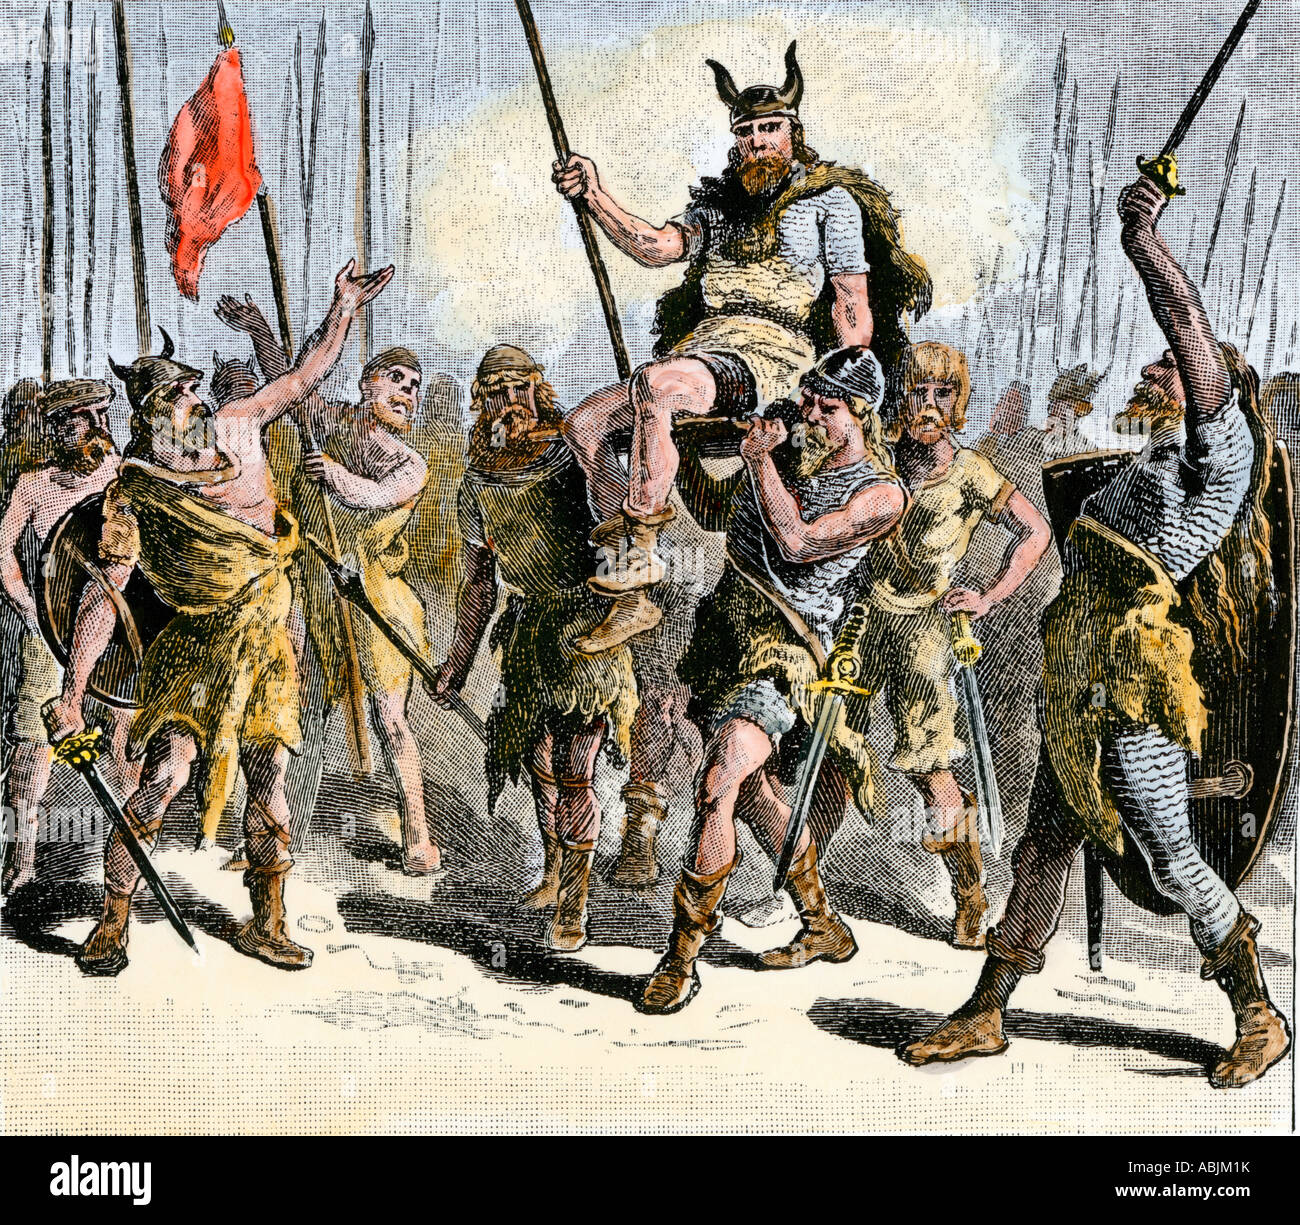 Teutonic warriors elevating their leader on a shield after a victory - Stock Image